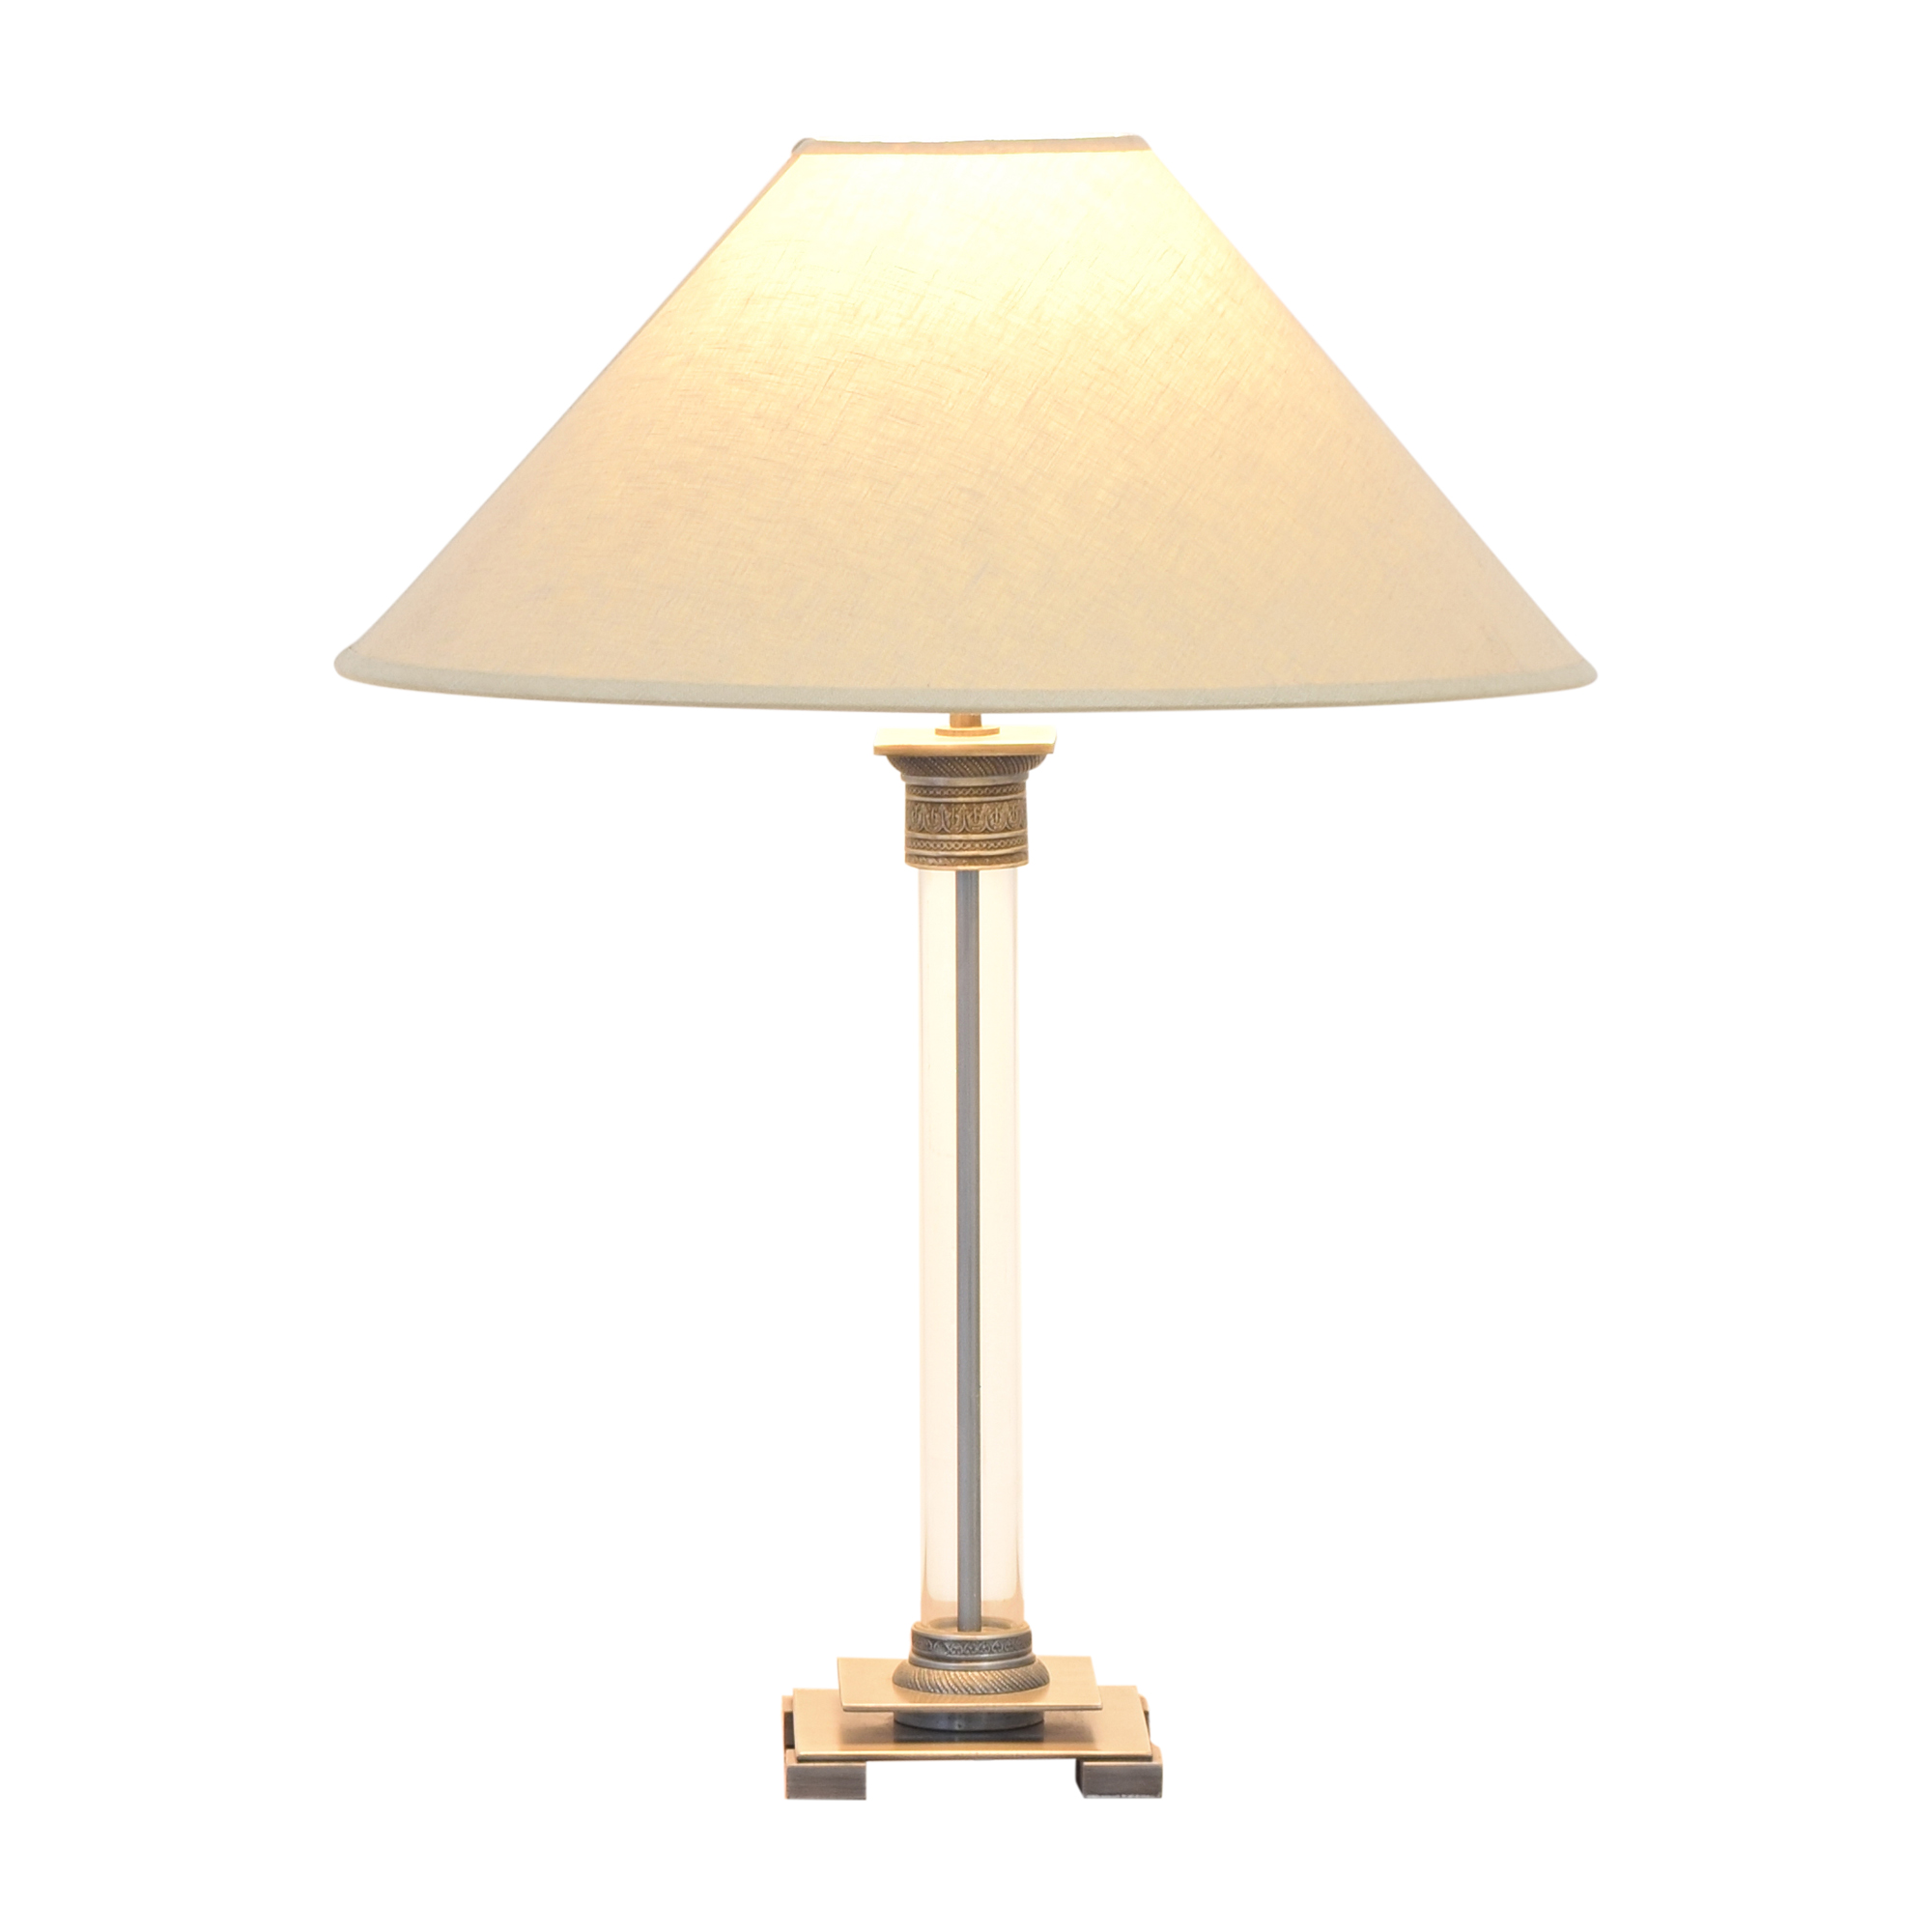 Restoration Hardware Restoration Hardware Column Table Lamp second hand